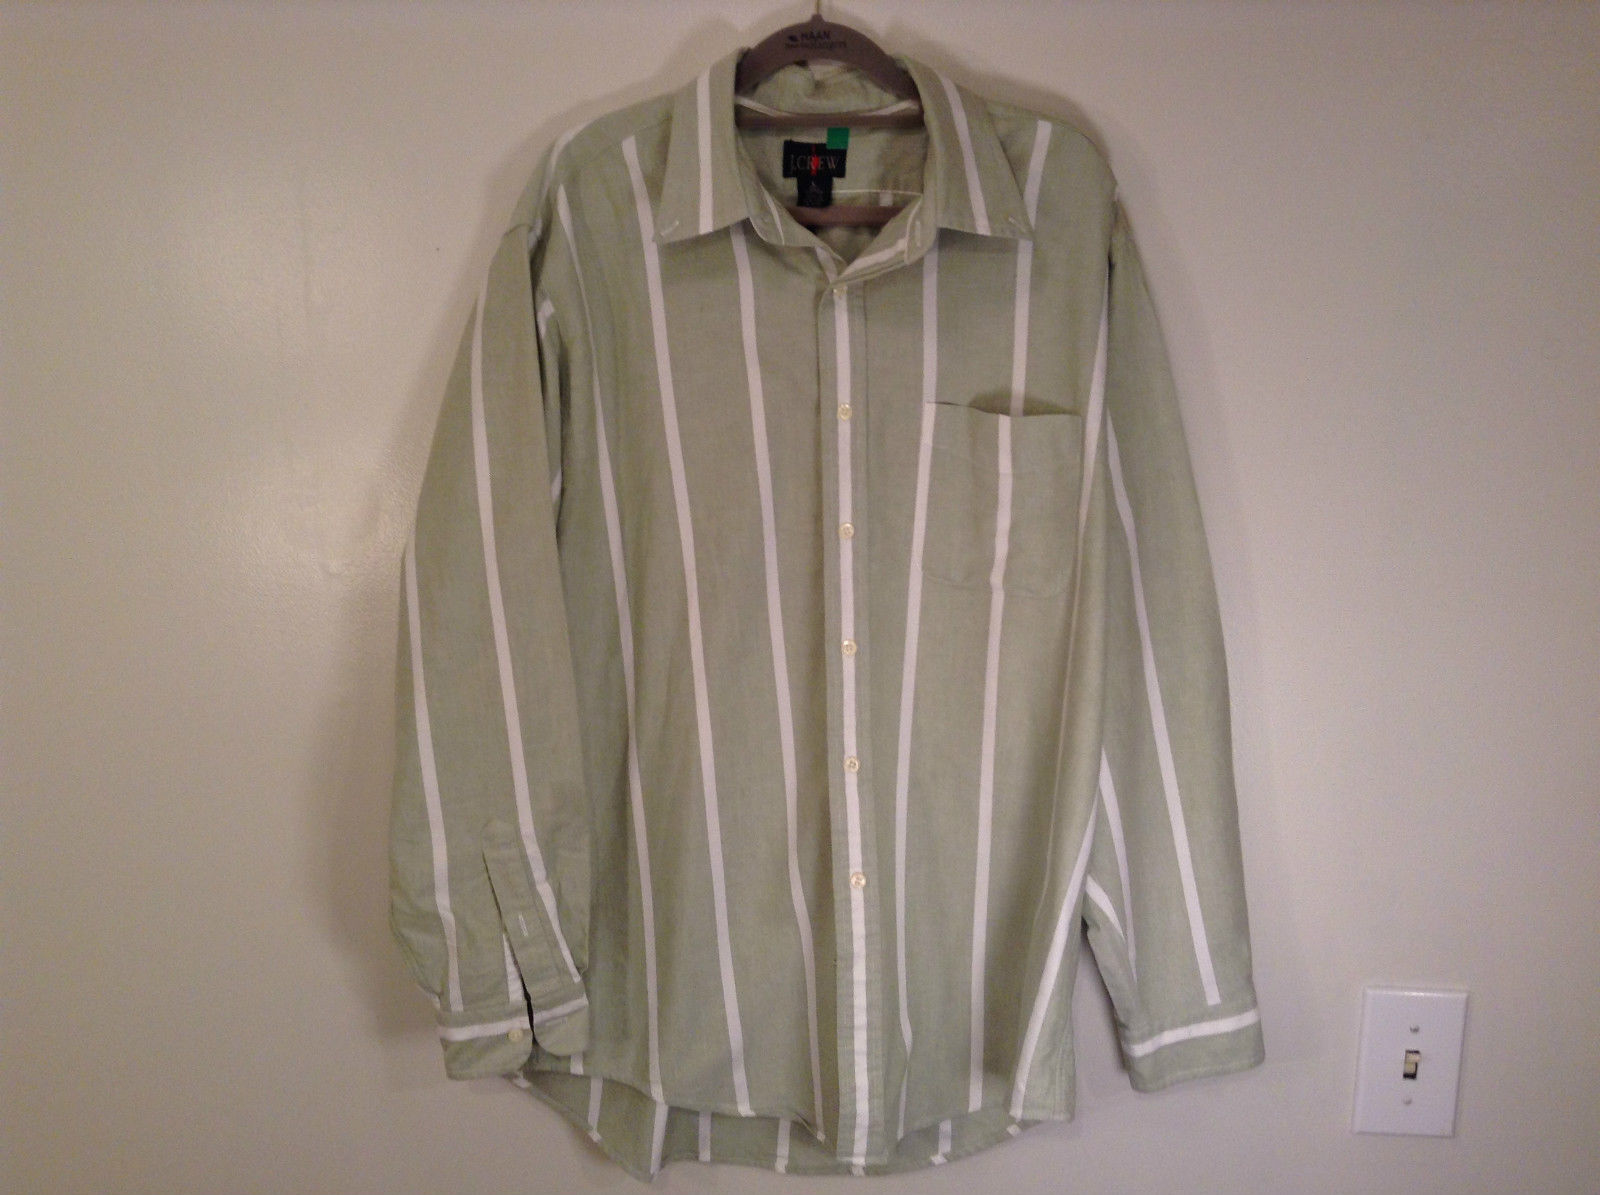 Primary image for Striped Green Long Sleeve Button Up J Crew Shirt Excellent Condition Size Large